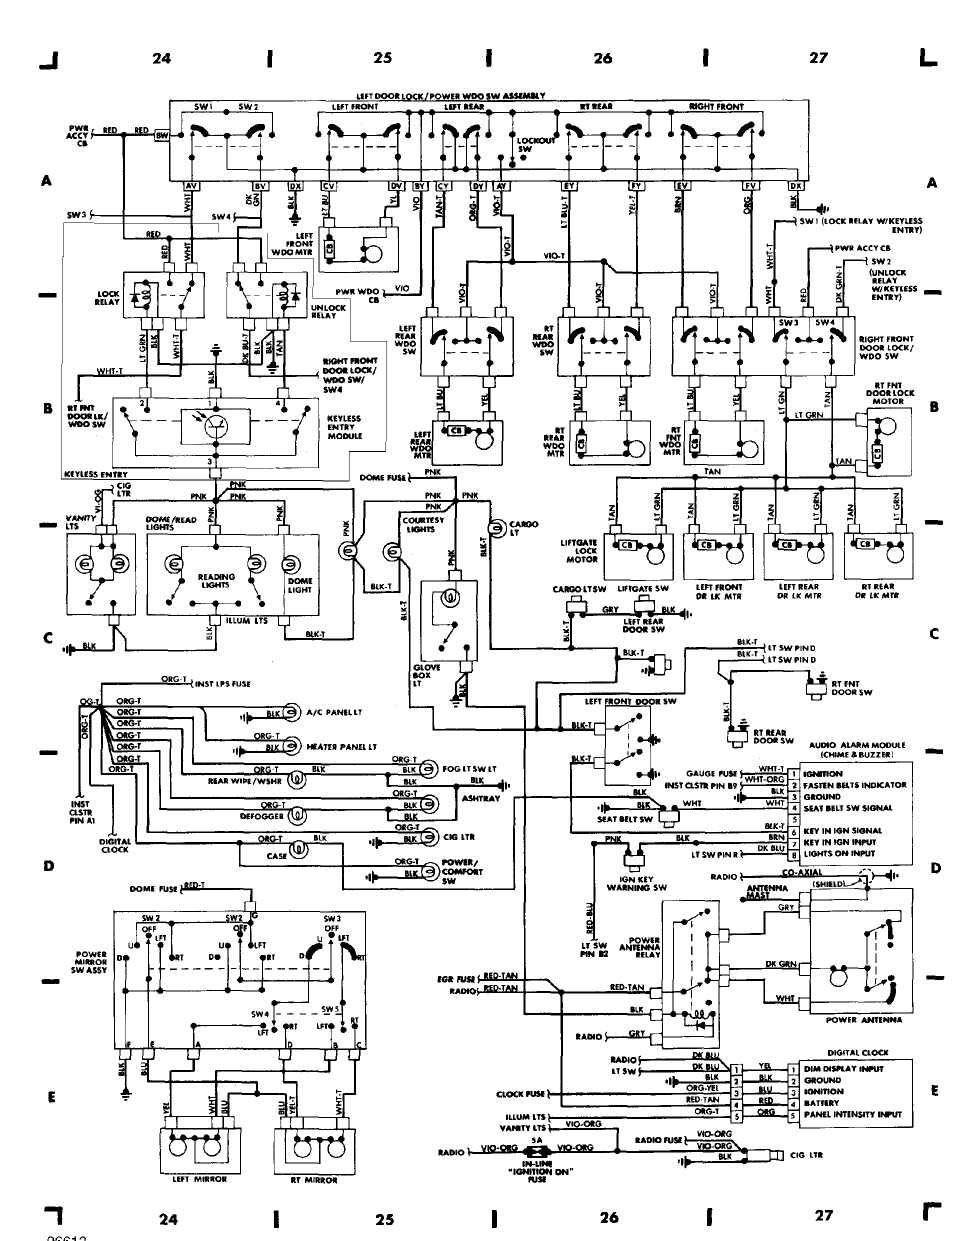 wiring_diagrams_html_61f5e0ad wiring diagrams 1984 1991 jeep cherokee (xj) jeep 2001 jeep grand cherokee electrical diagram at bakdesigns.co